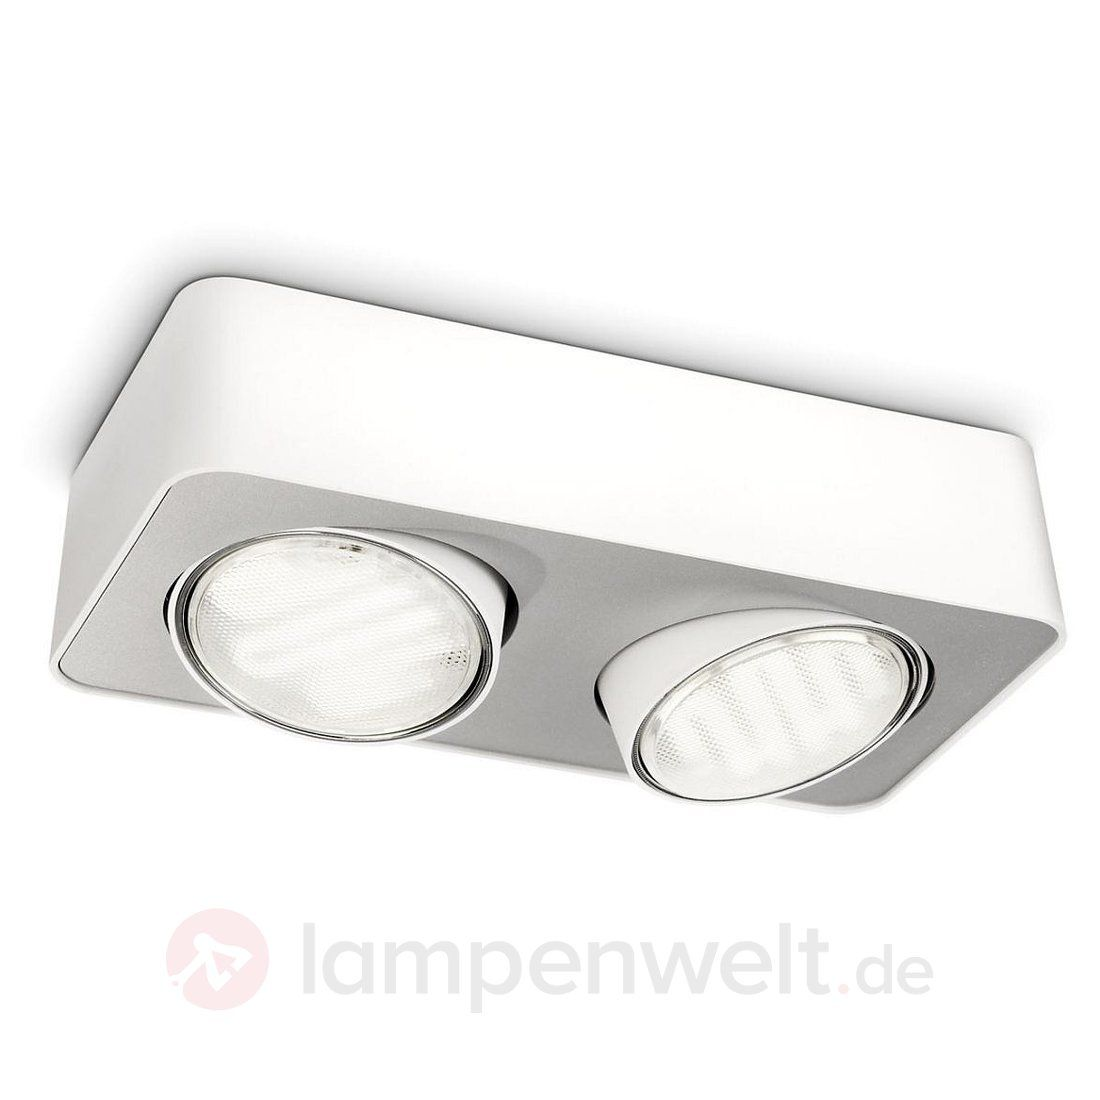 Deckenspots Led Deckenspots Aufputz Led Shoes Lampen Deckenspots Led